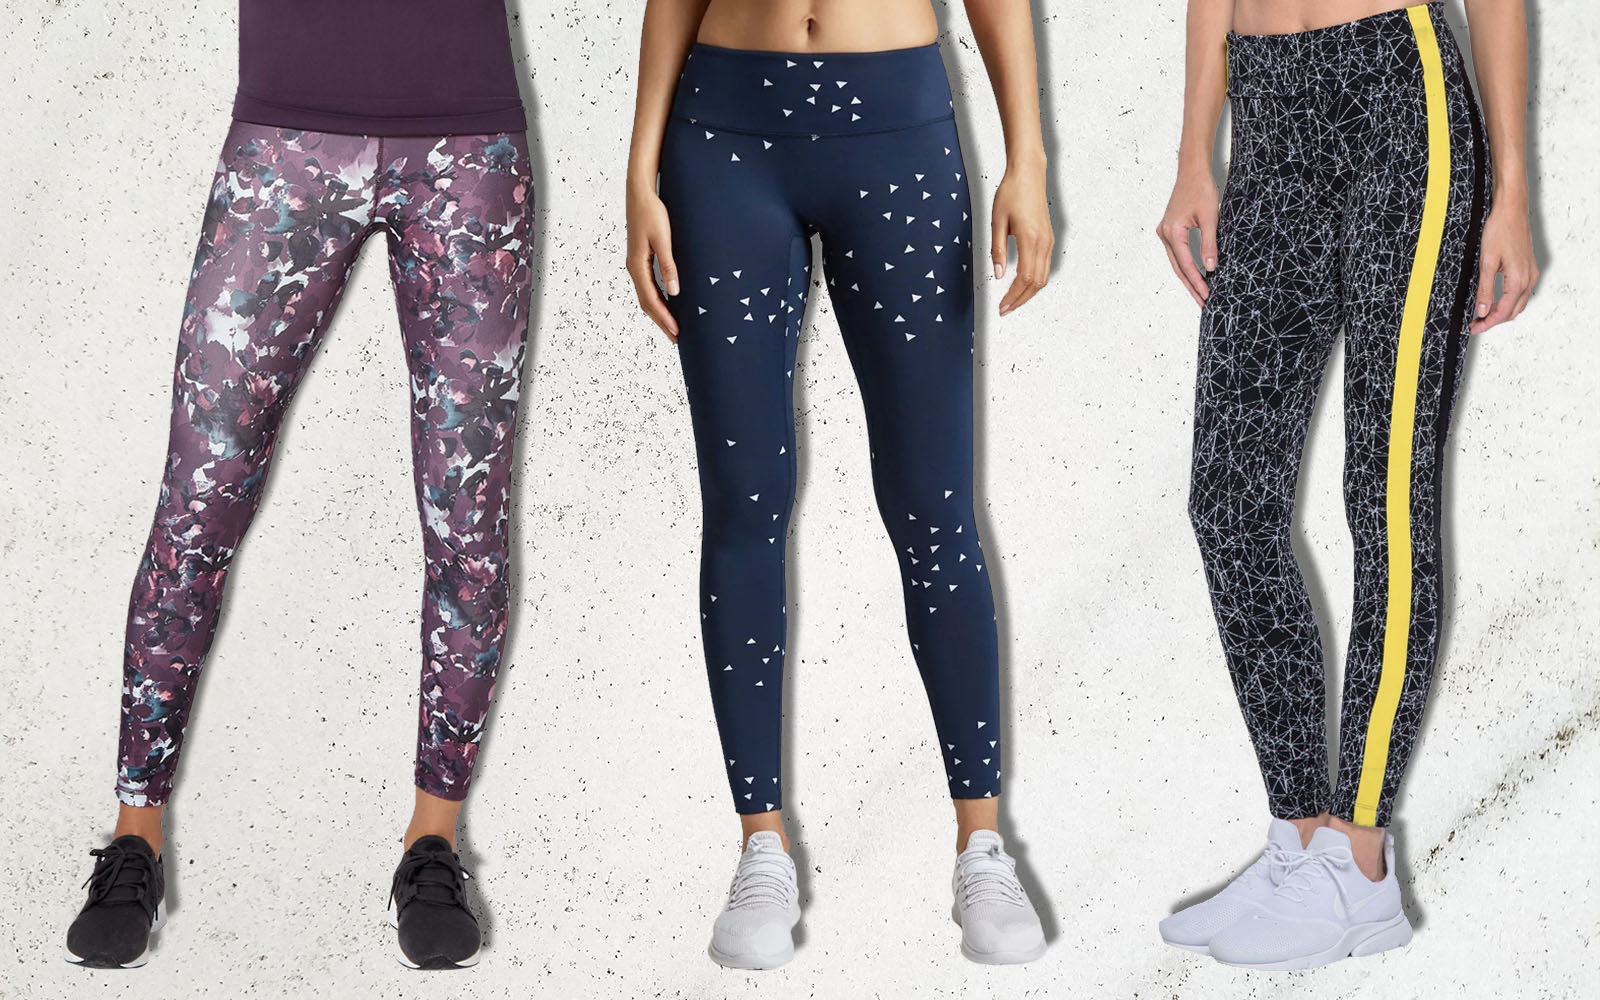 The 11 Best Labor Day Deals on Leggings Not to Miss